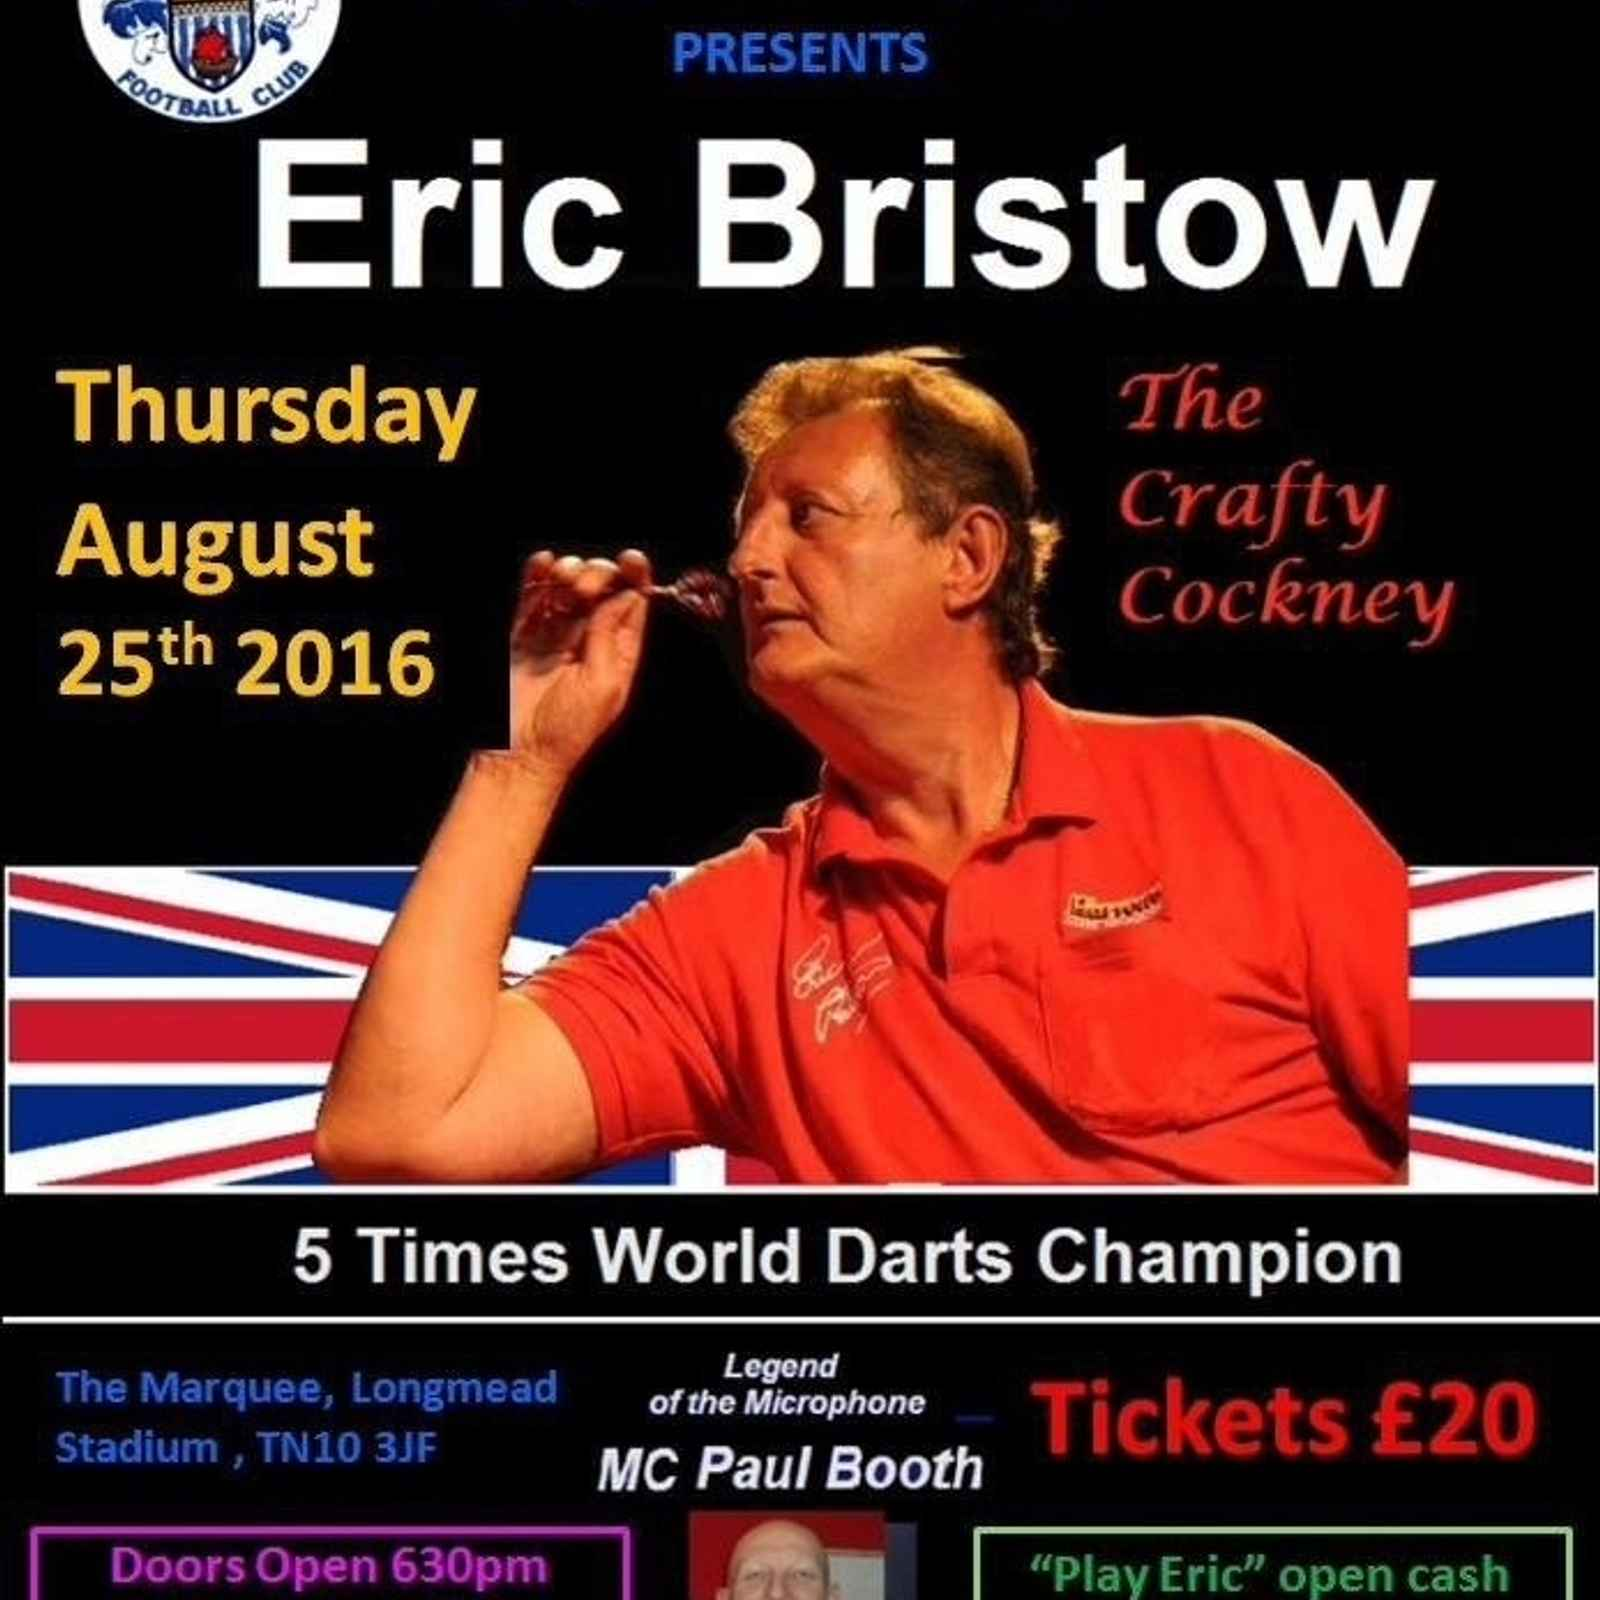 An Evening with Eric Bristow, Thursday 25th August